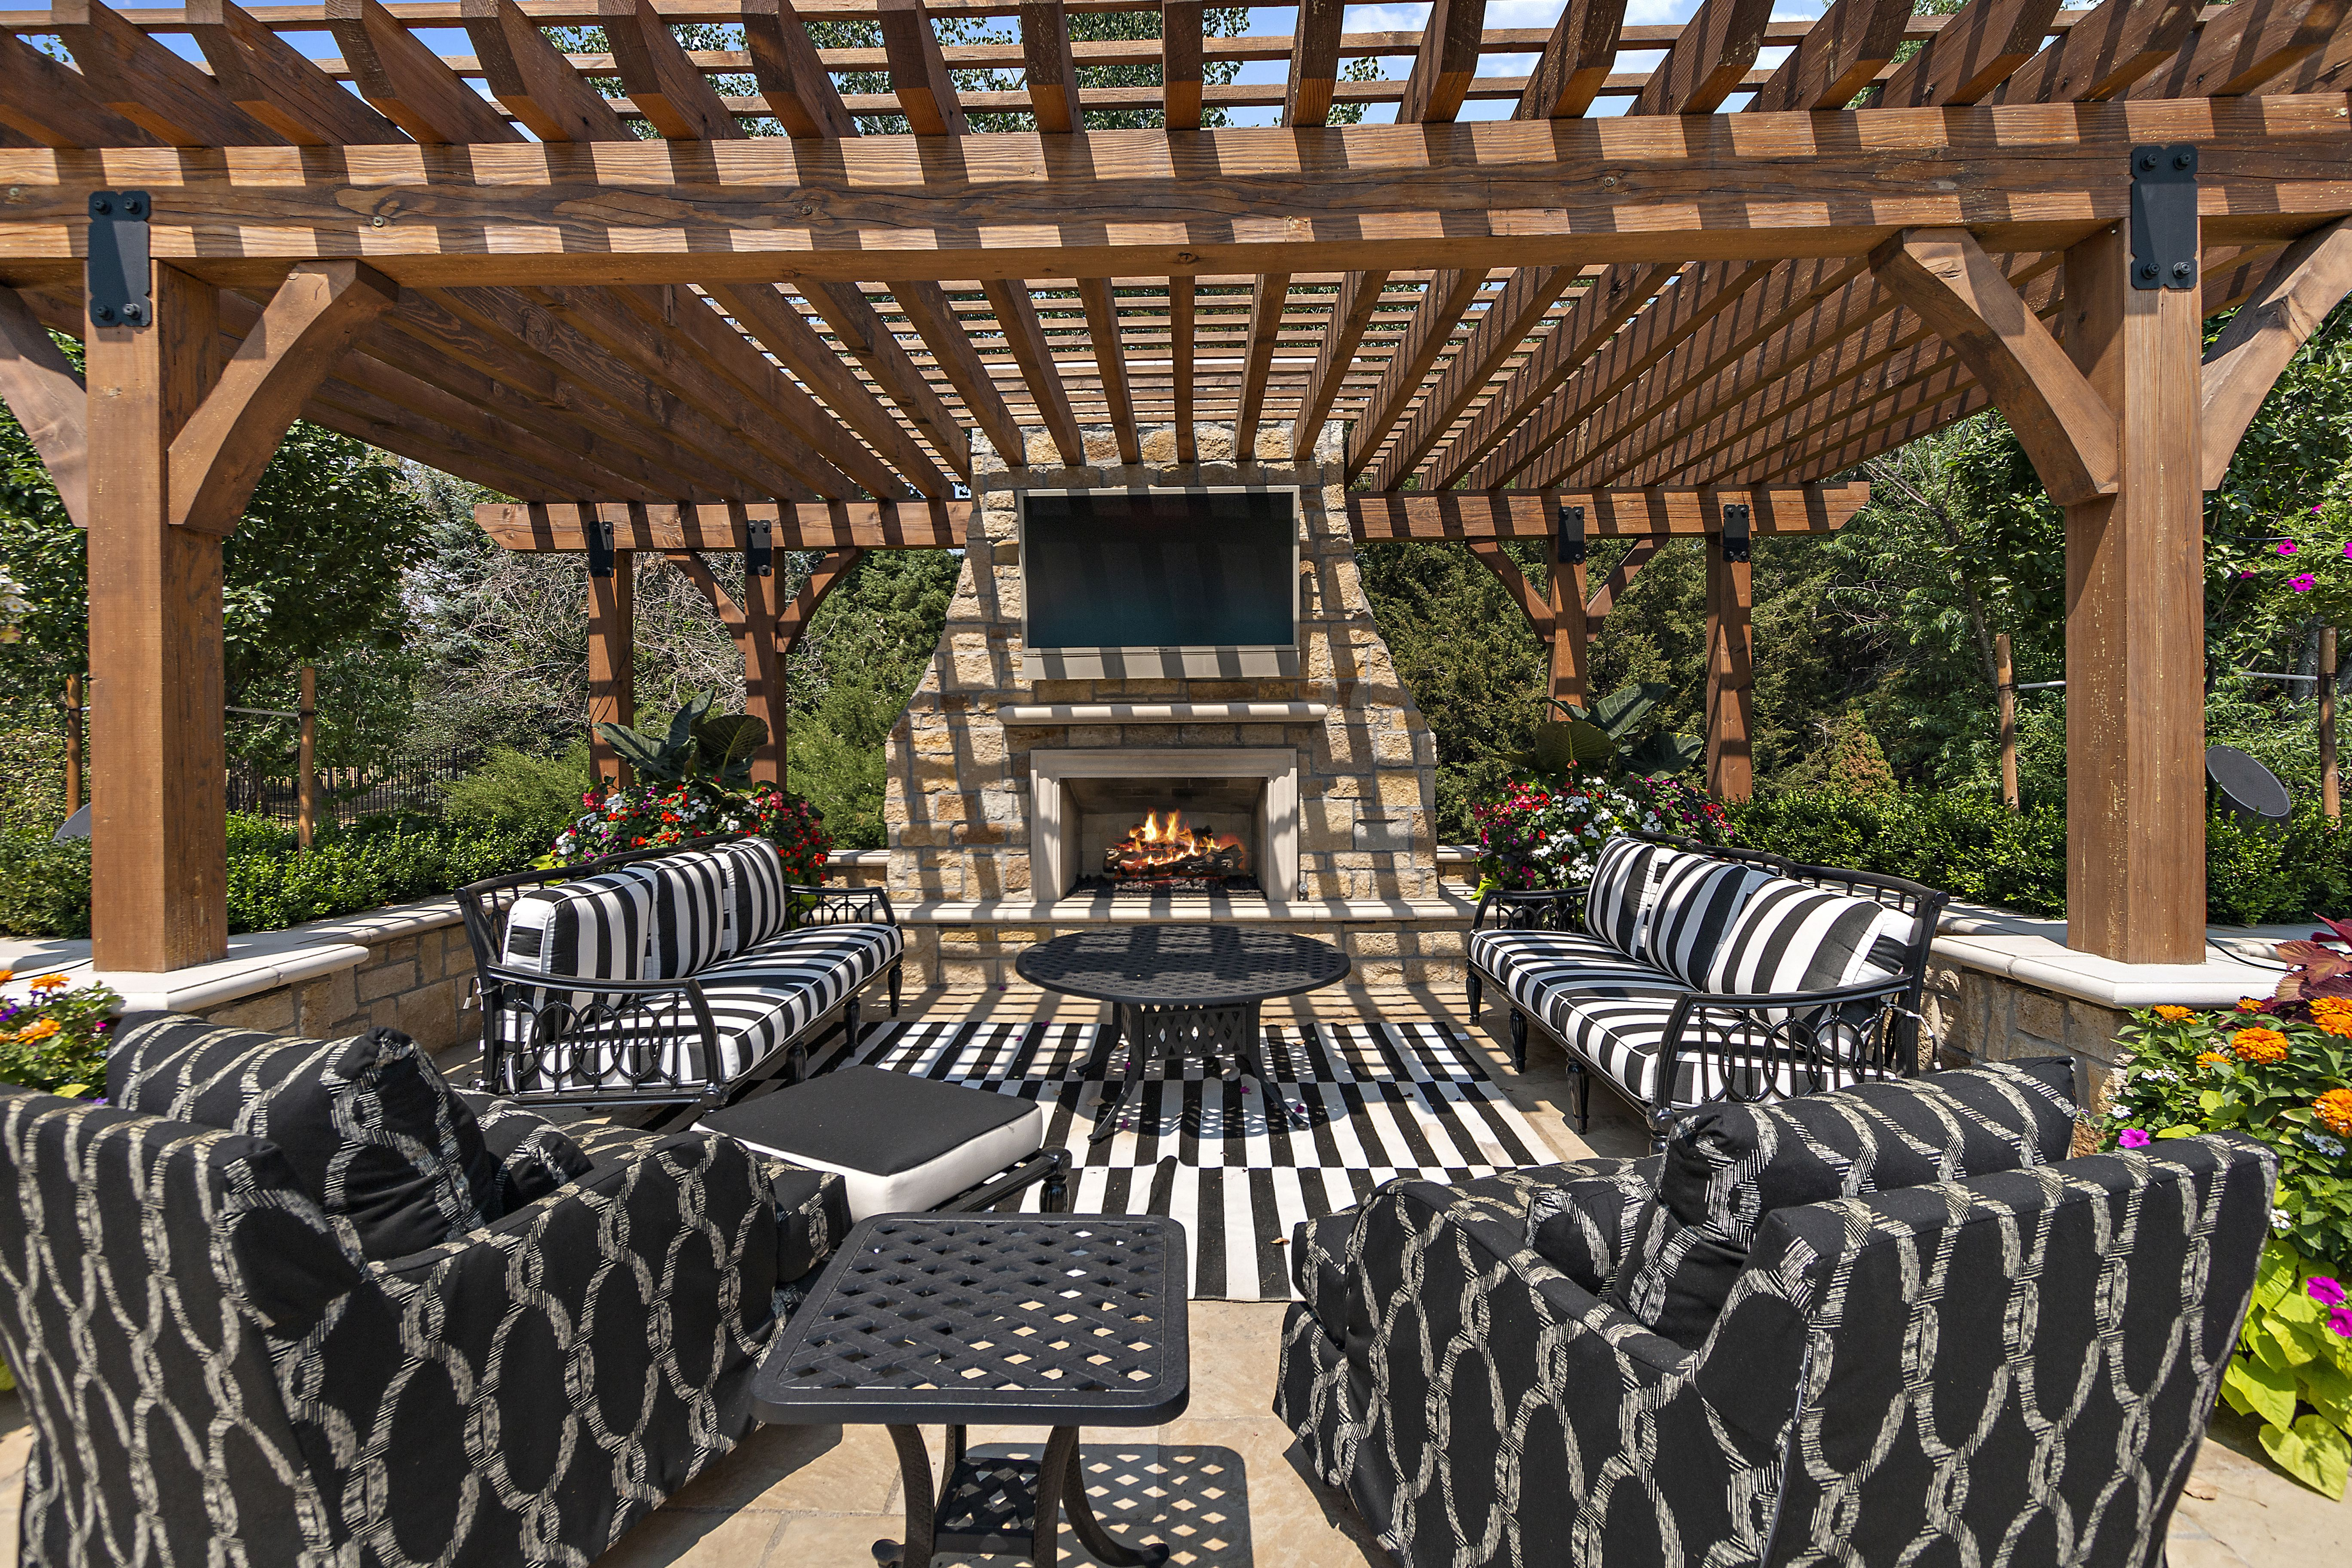 A view of the patio and pergola.